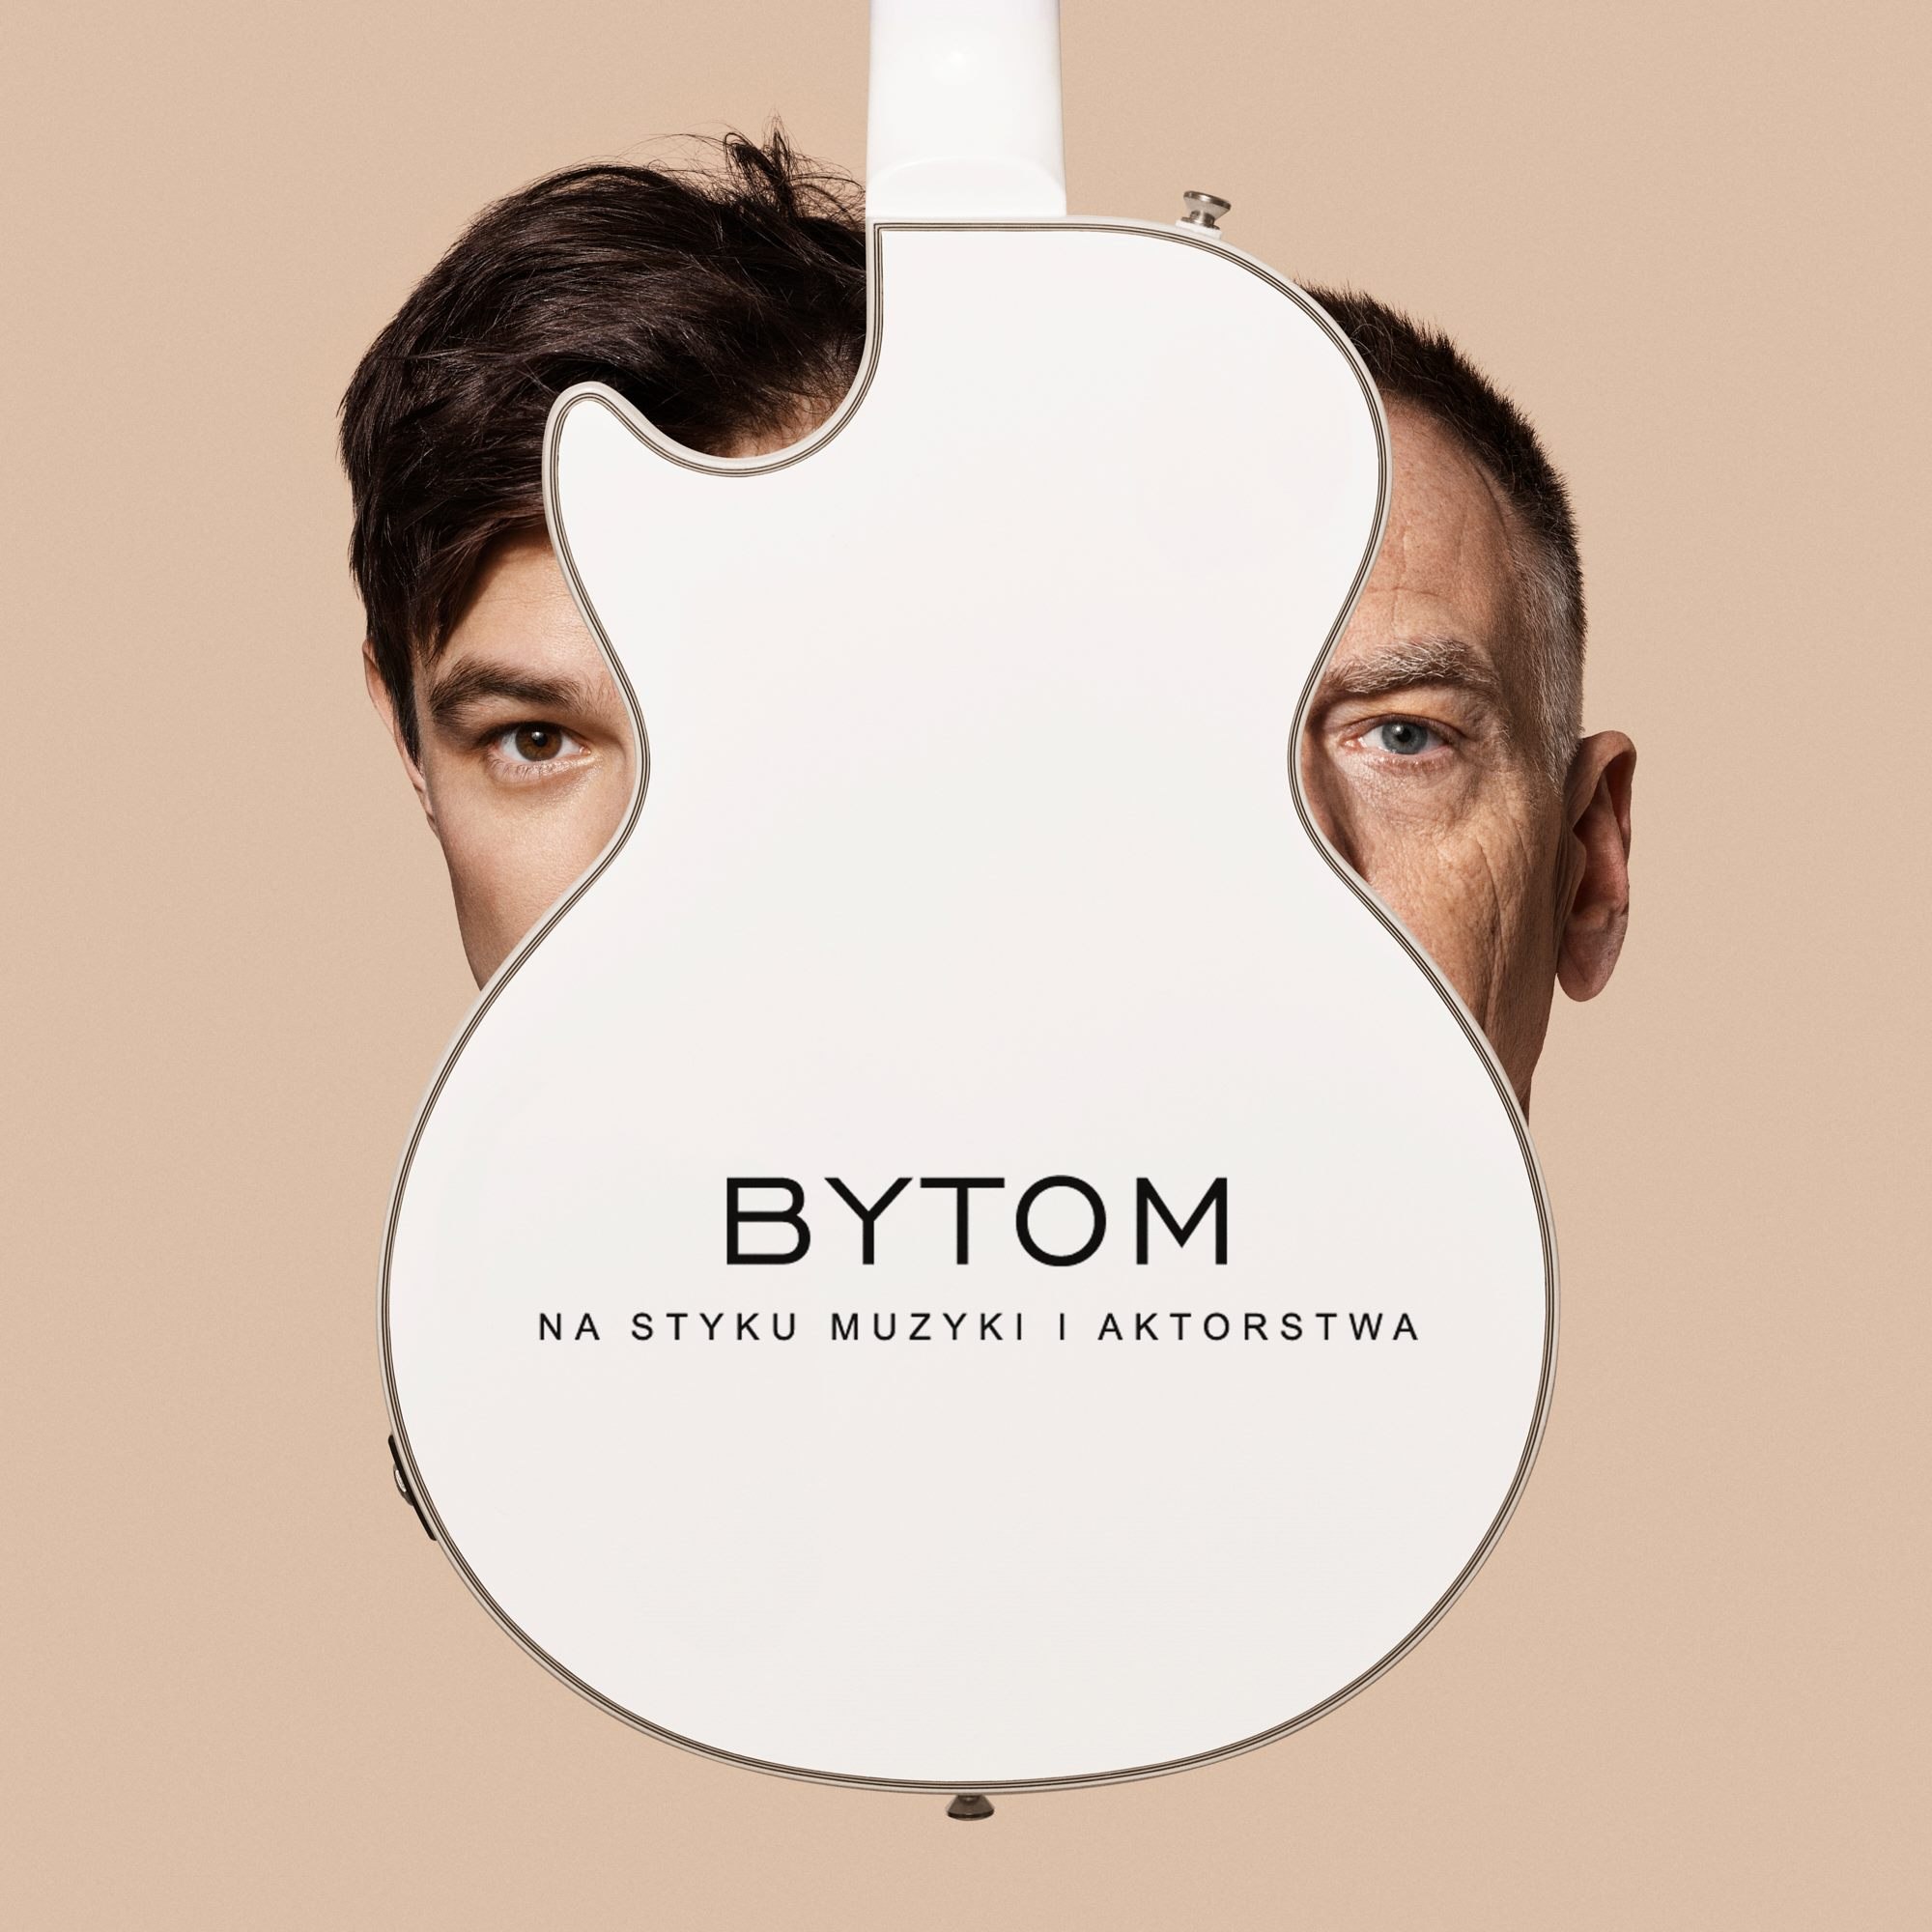 Bytom- new collection of the edge of music and acting